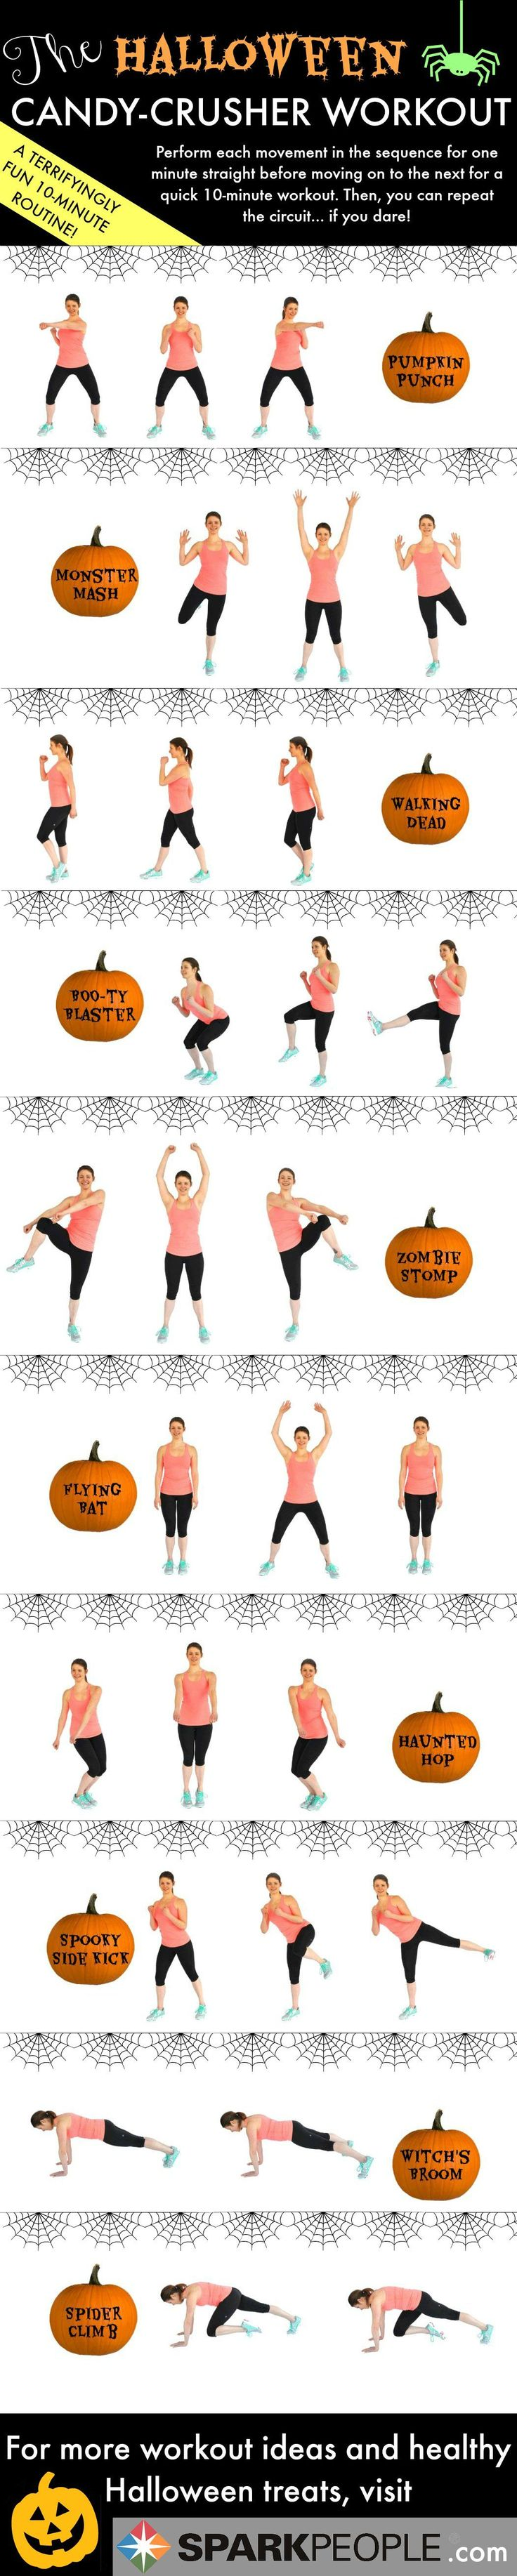 Scare away the Halloween candy calories with this calorie-crushing workout! Kick, squat and punch your way through the extra candy calories!